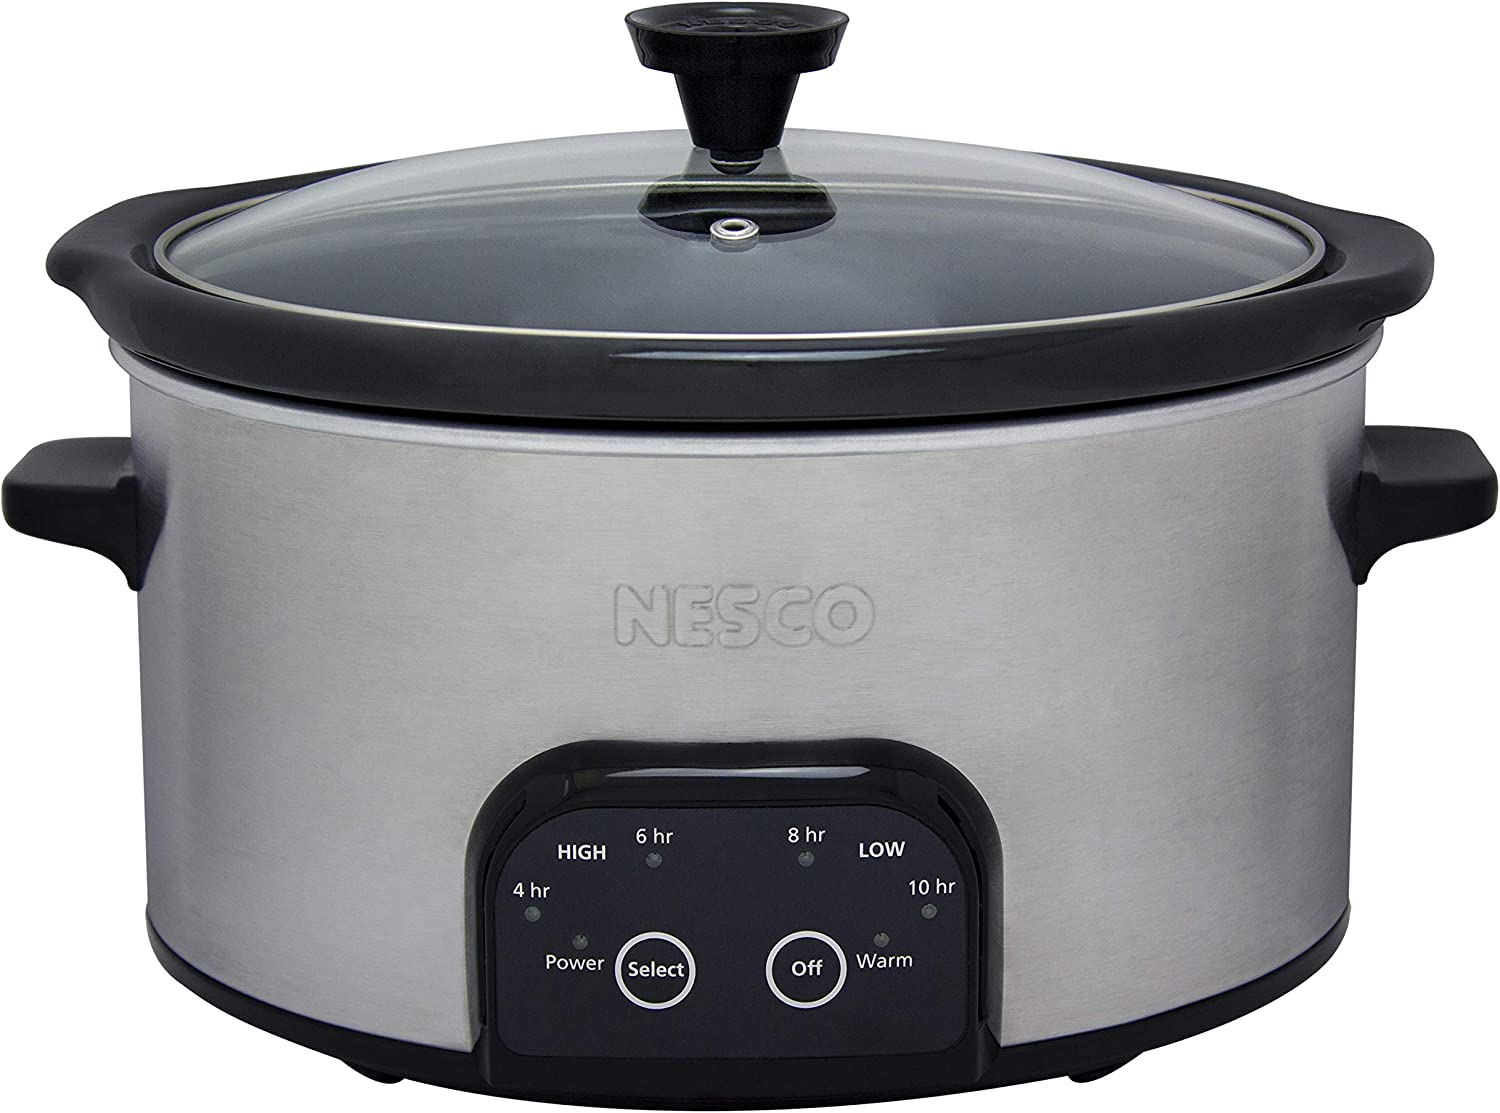 Nesco DSC-6-25 Slow Cooker, 6 Quart, Silver